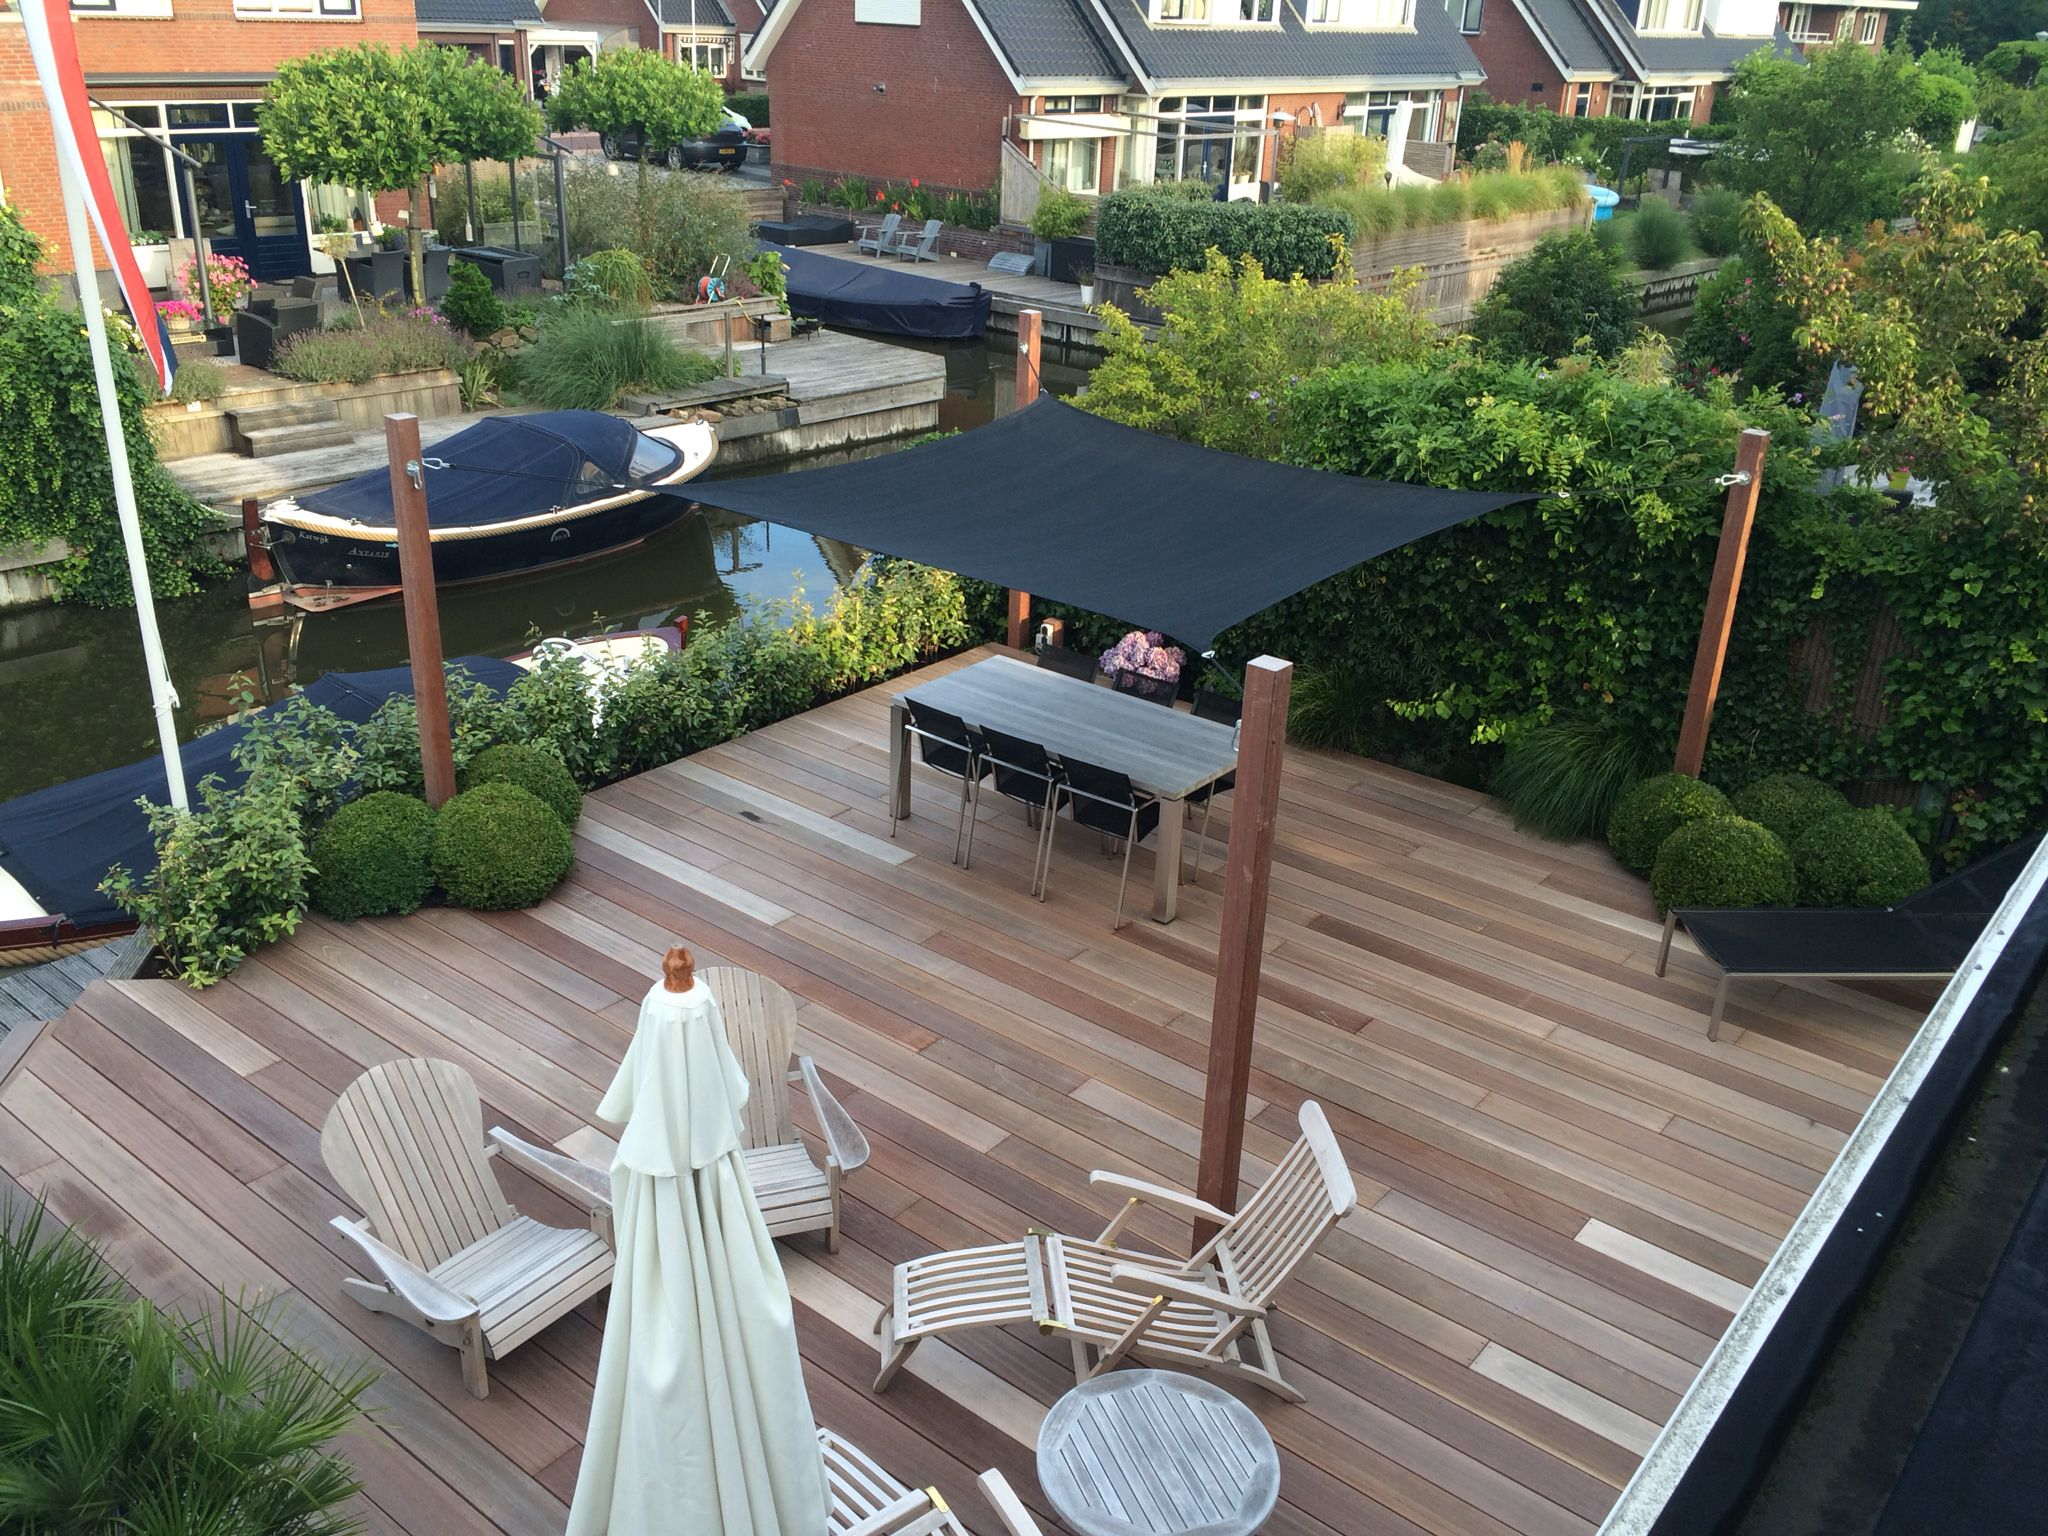 Tuin Ligstoel Terras Met Schaduwdoek Tuin Outdoor Decor Outdoor